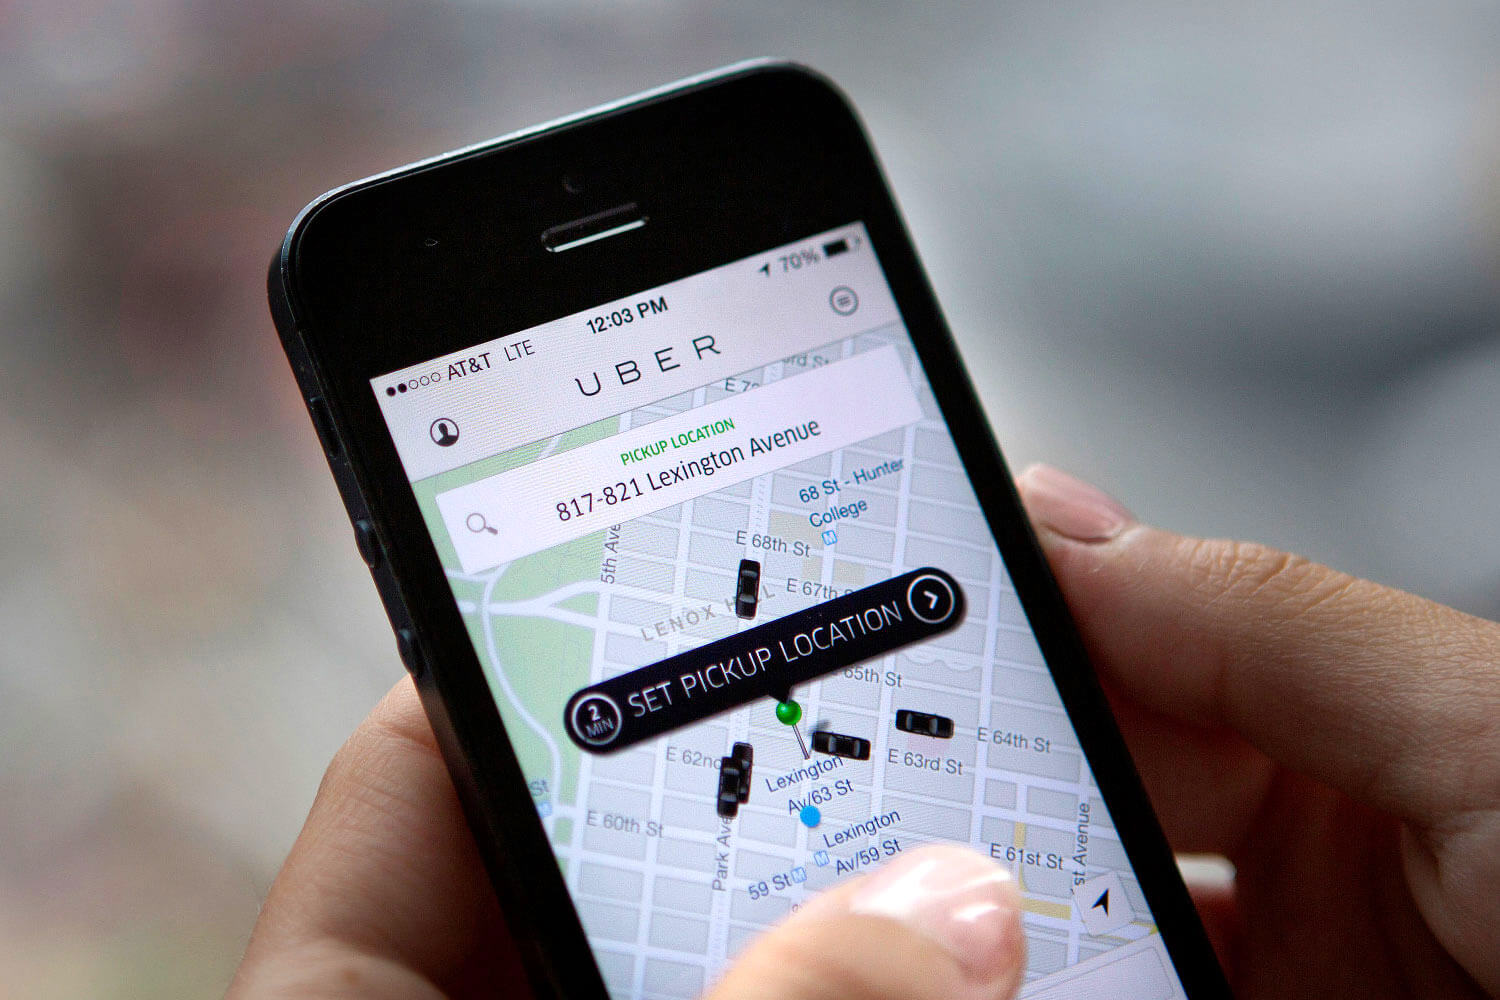 Apple granted Uber's iOS app an entitlement that allowed it to record users' screens